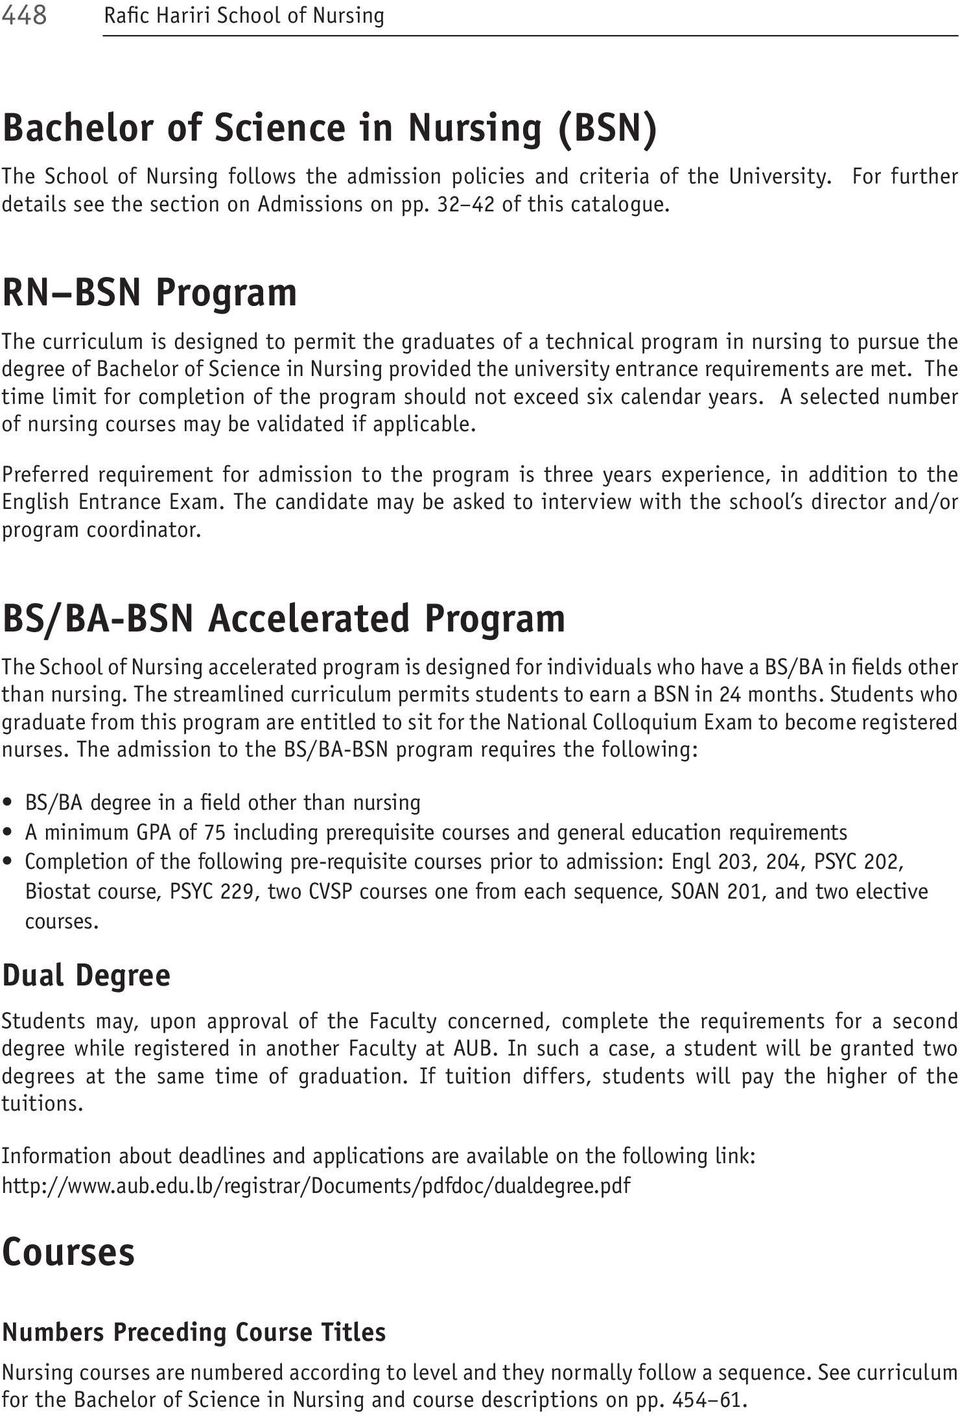 RN BSN Program The curriculum is designed to permit the graduates of a technical program in nursing to pursue the degree of Bachelor of Science in Nursing provided the university entrance